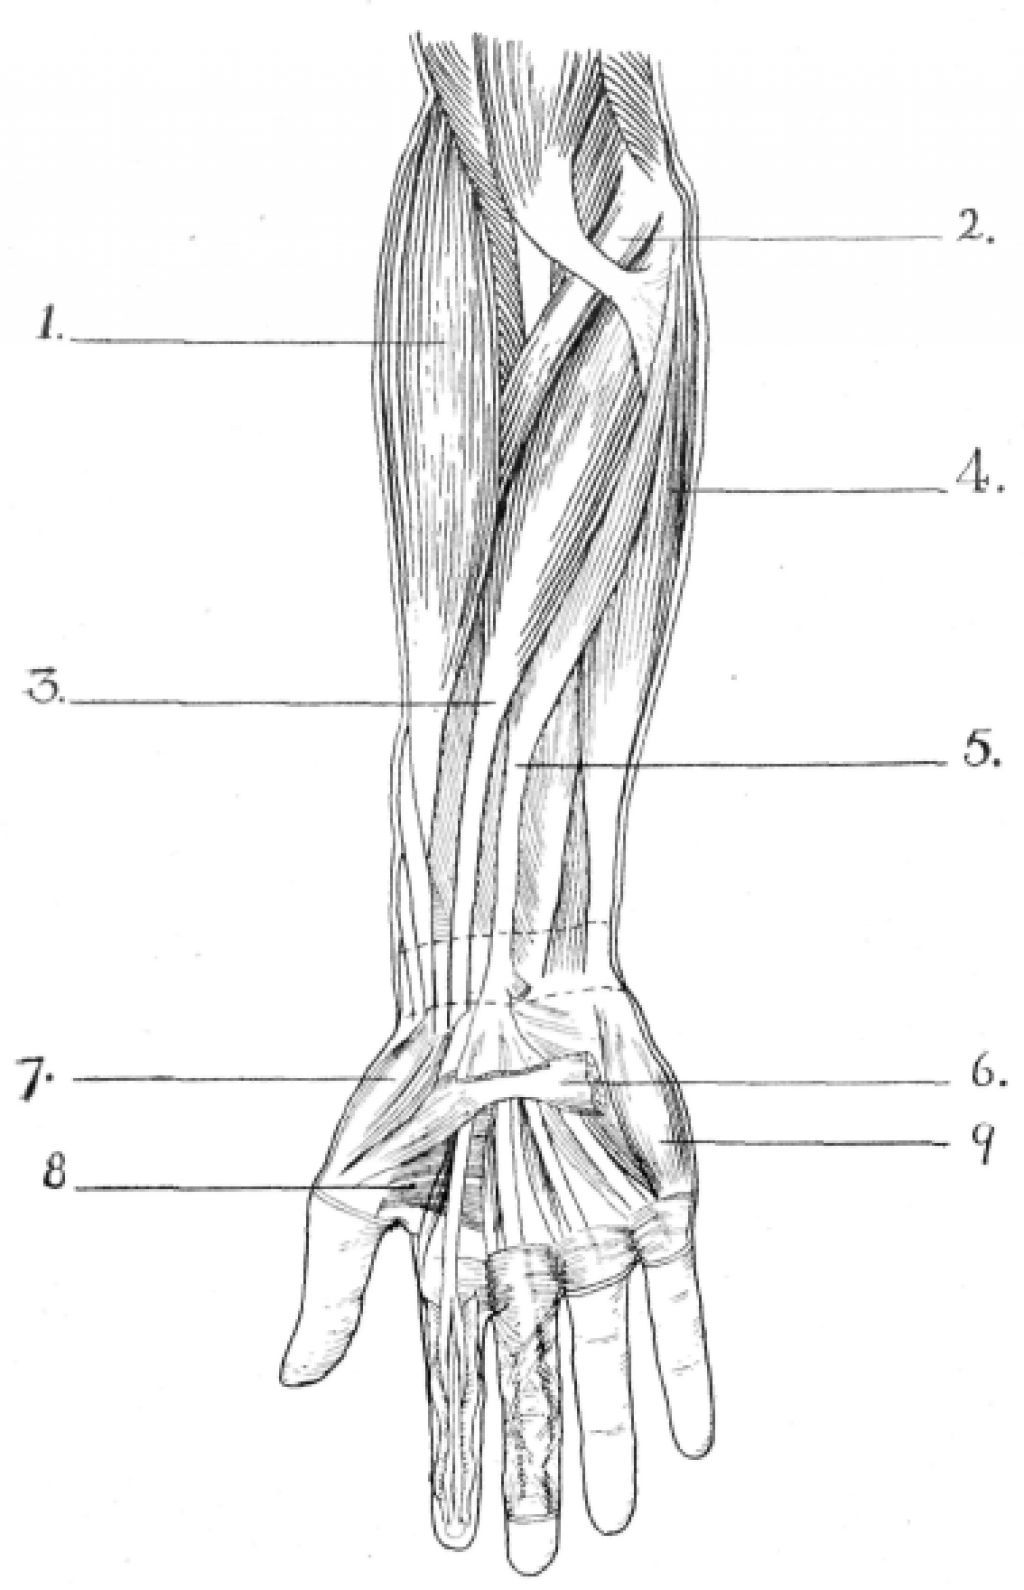 Forearm Muscles | Anatomy/PT/OT | Pinterest | Forearm muscles and ...